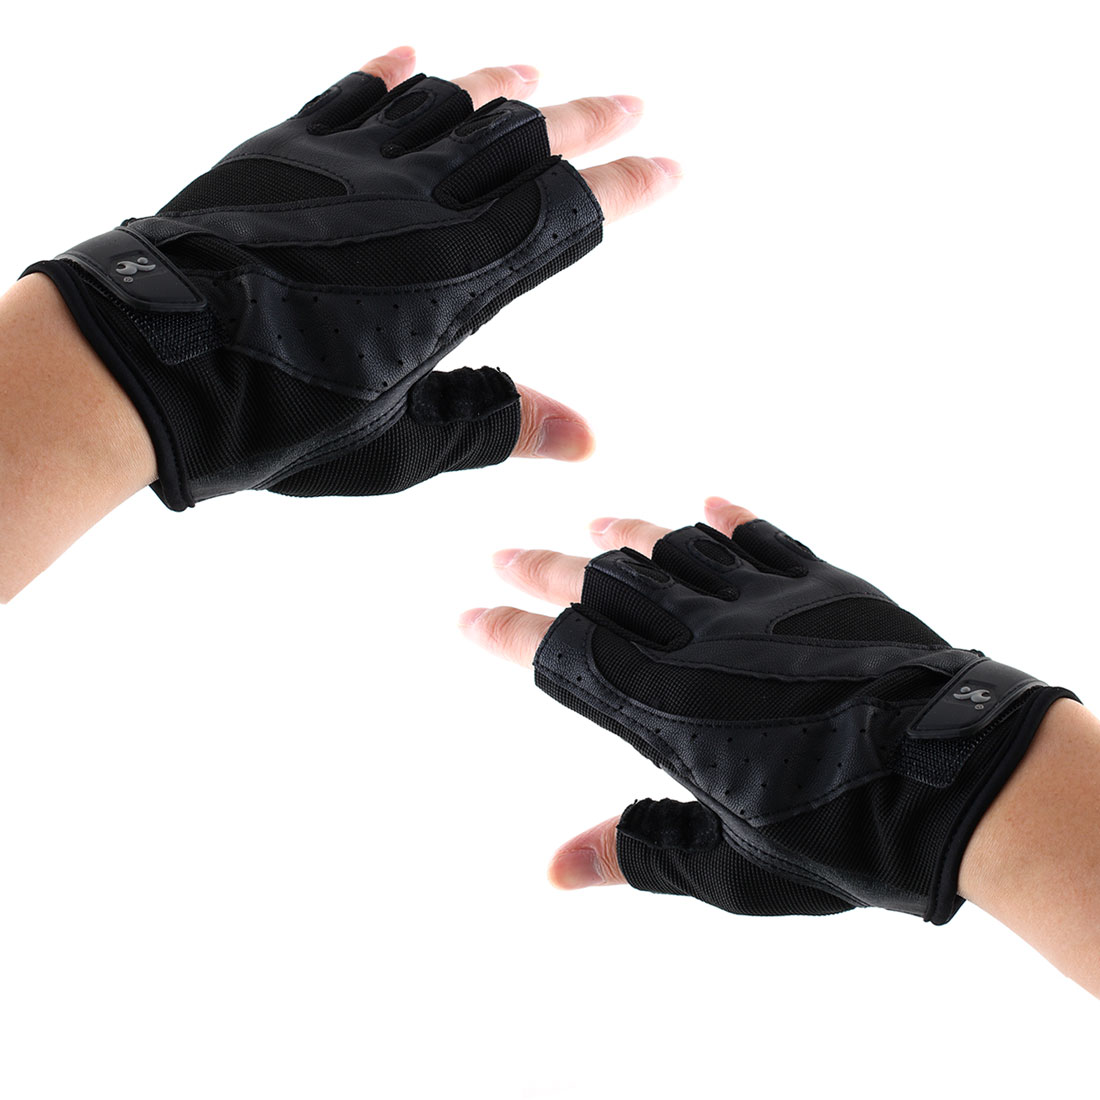 Boodun Authorized Men Sports Weight Lifting Gym Training Workout Fitness Palm Support Gloves Size XL Pair